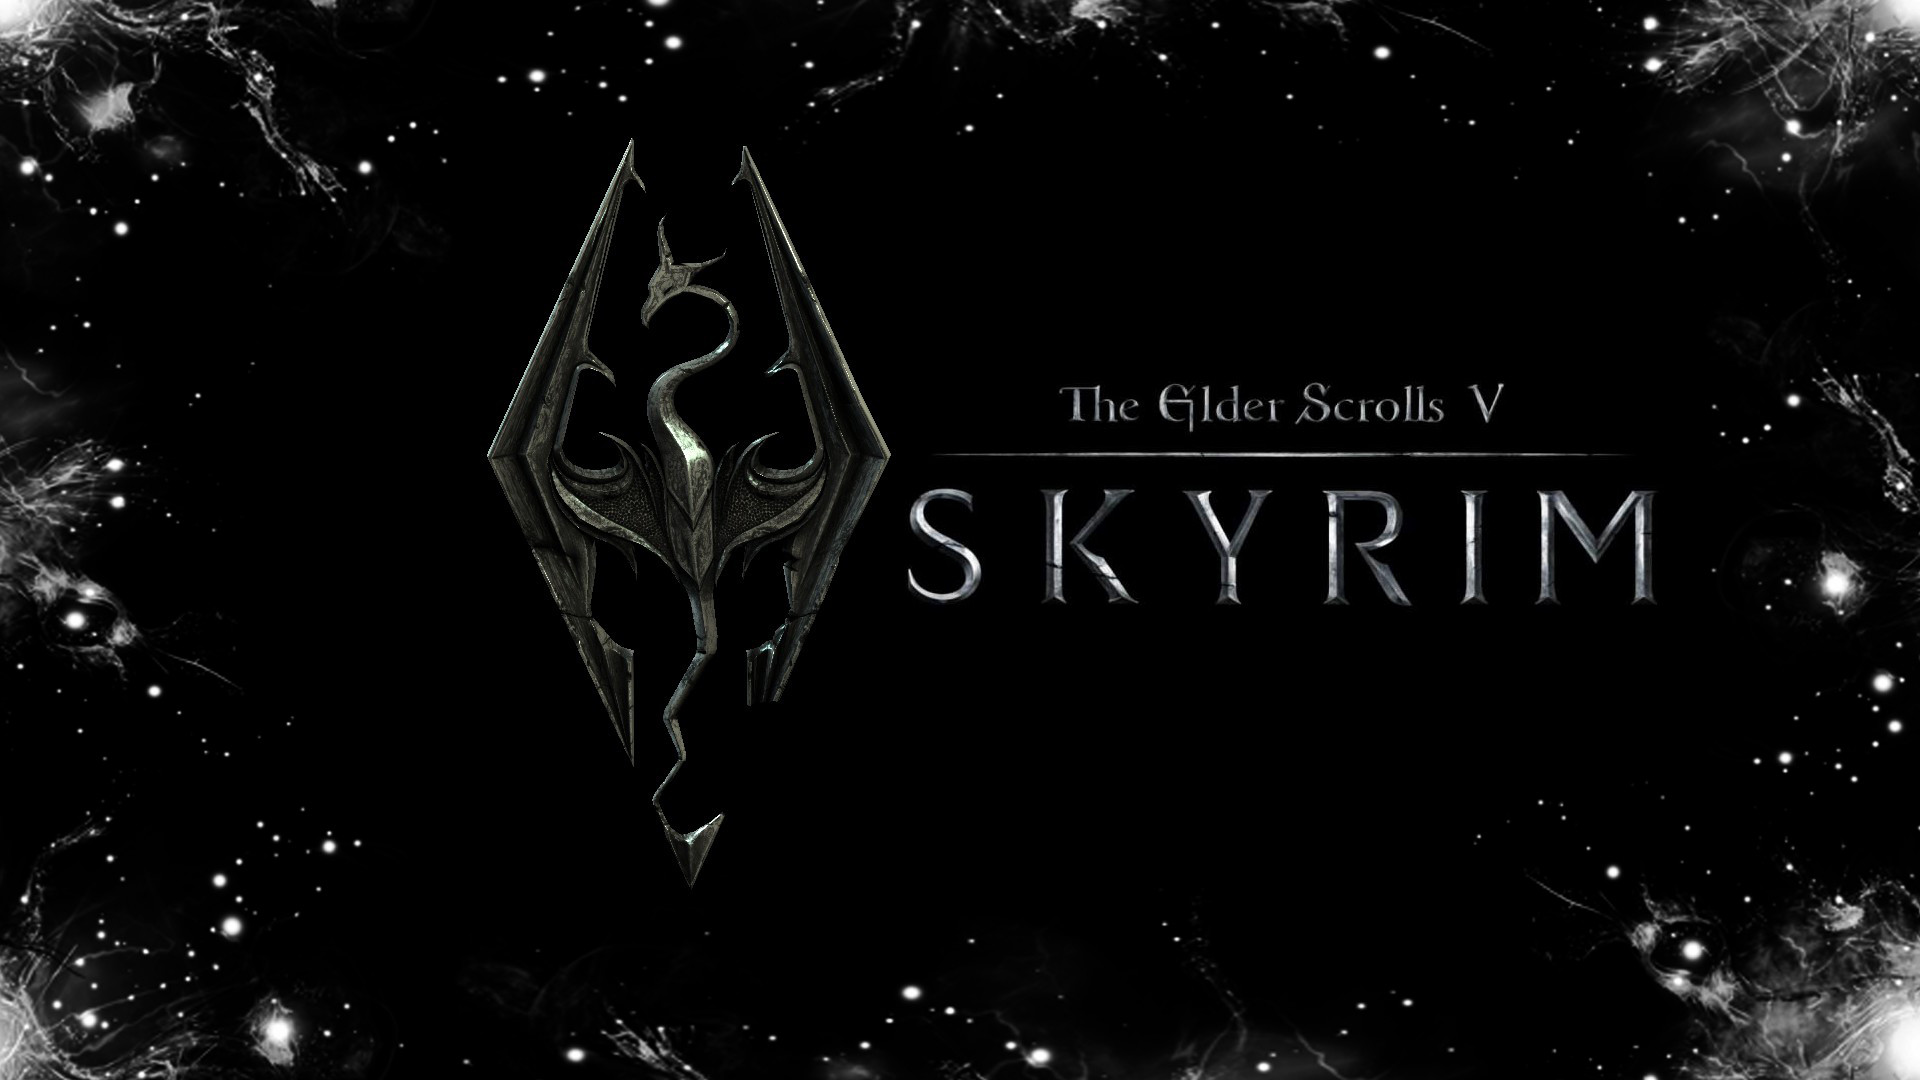 1920x1080 Skyrim-Wallpaper-10-by-daftrude